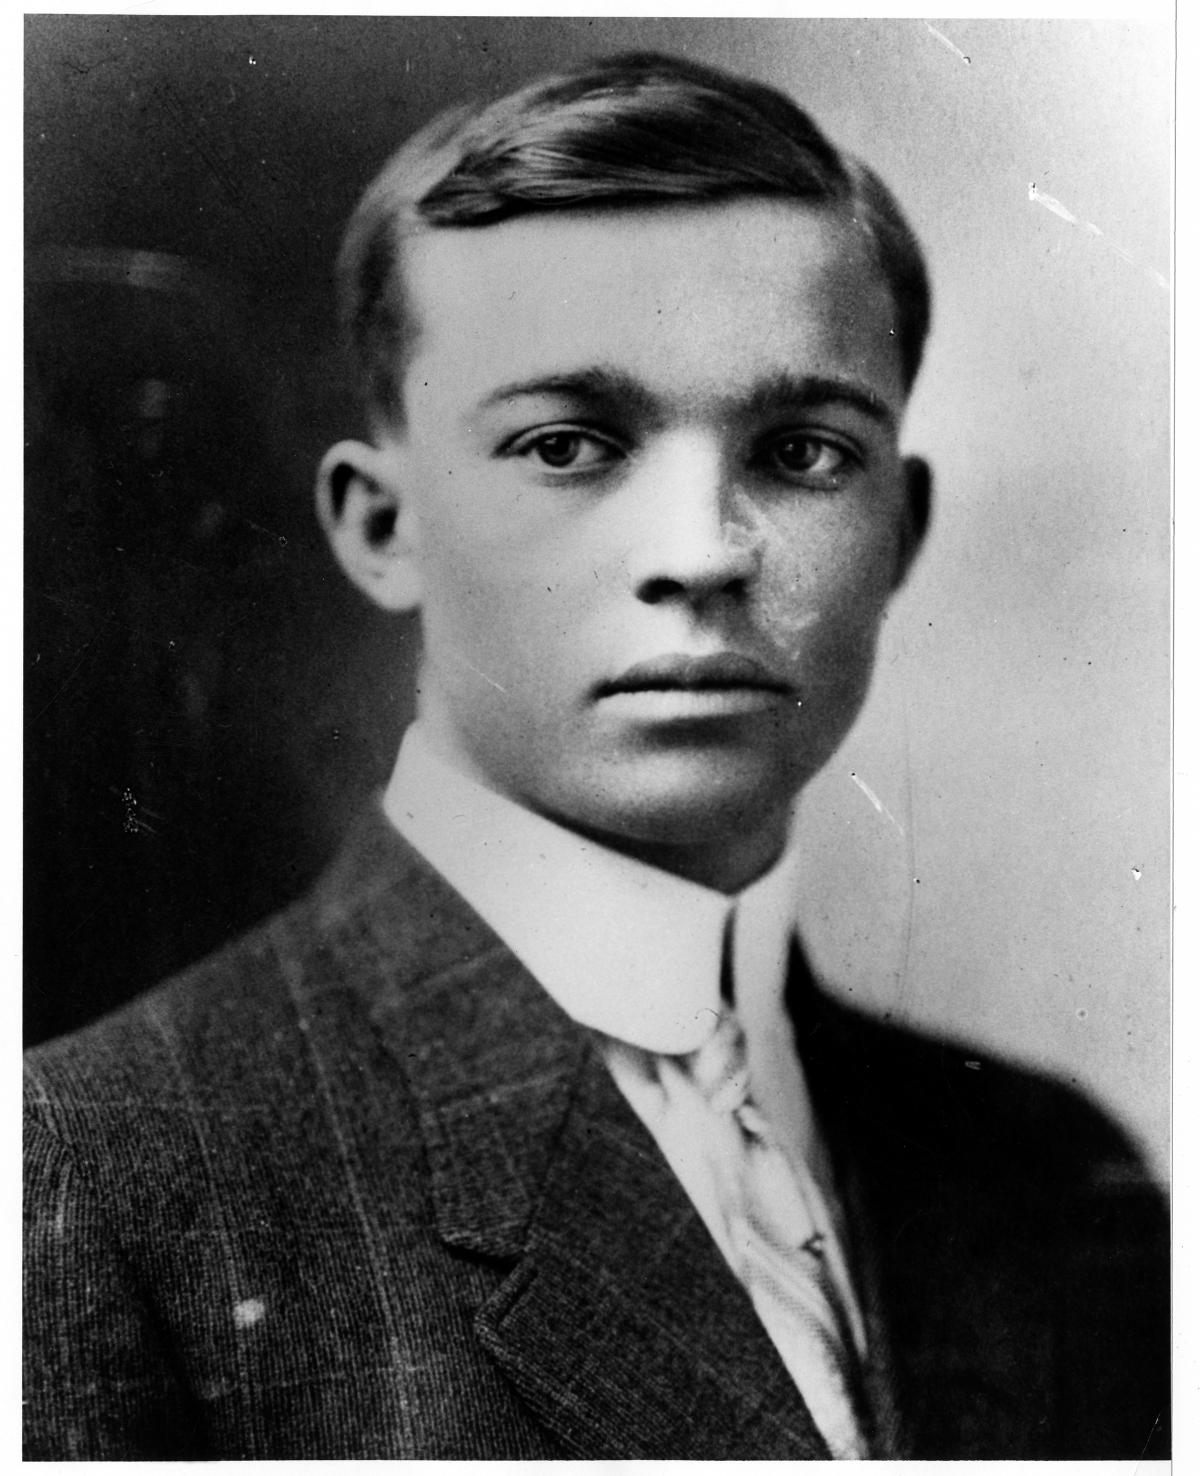 Dwight Eisenhower high school graduation portrait